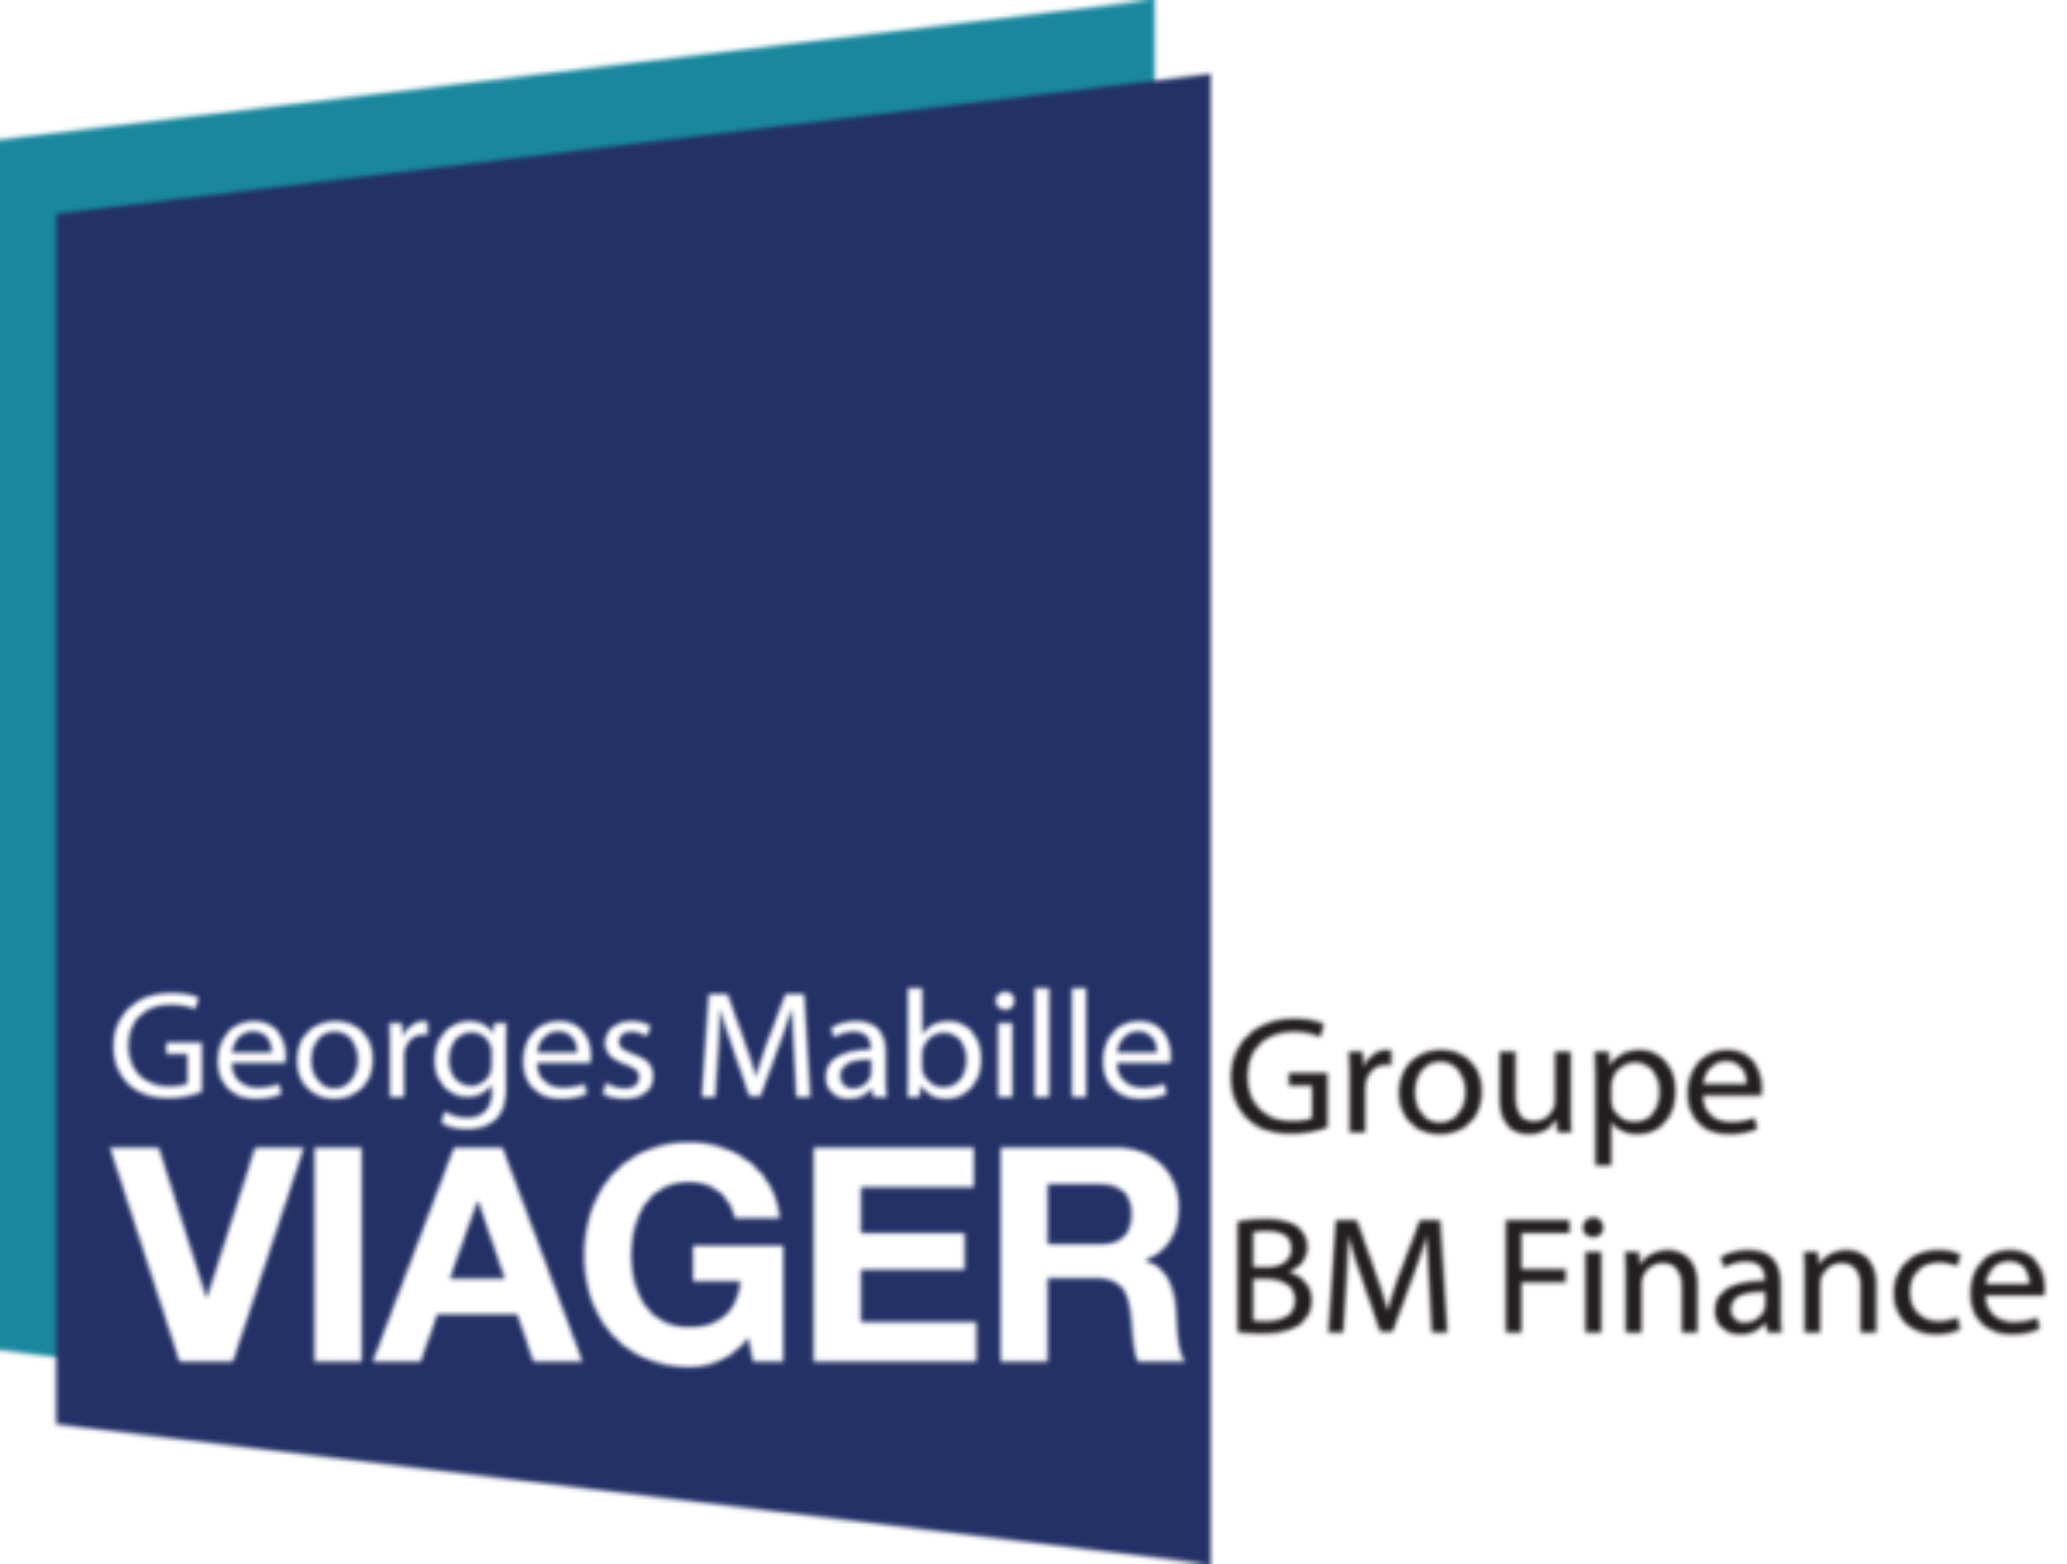 Georges Mabille Viager